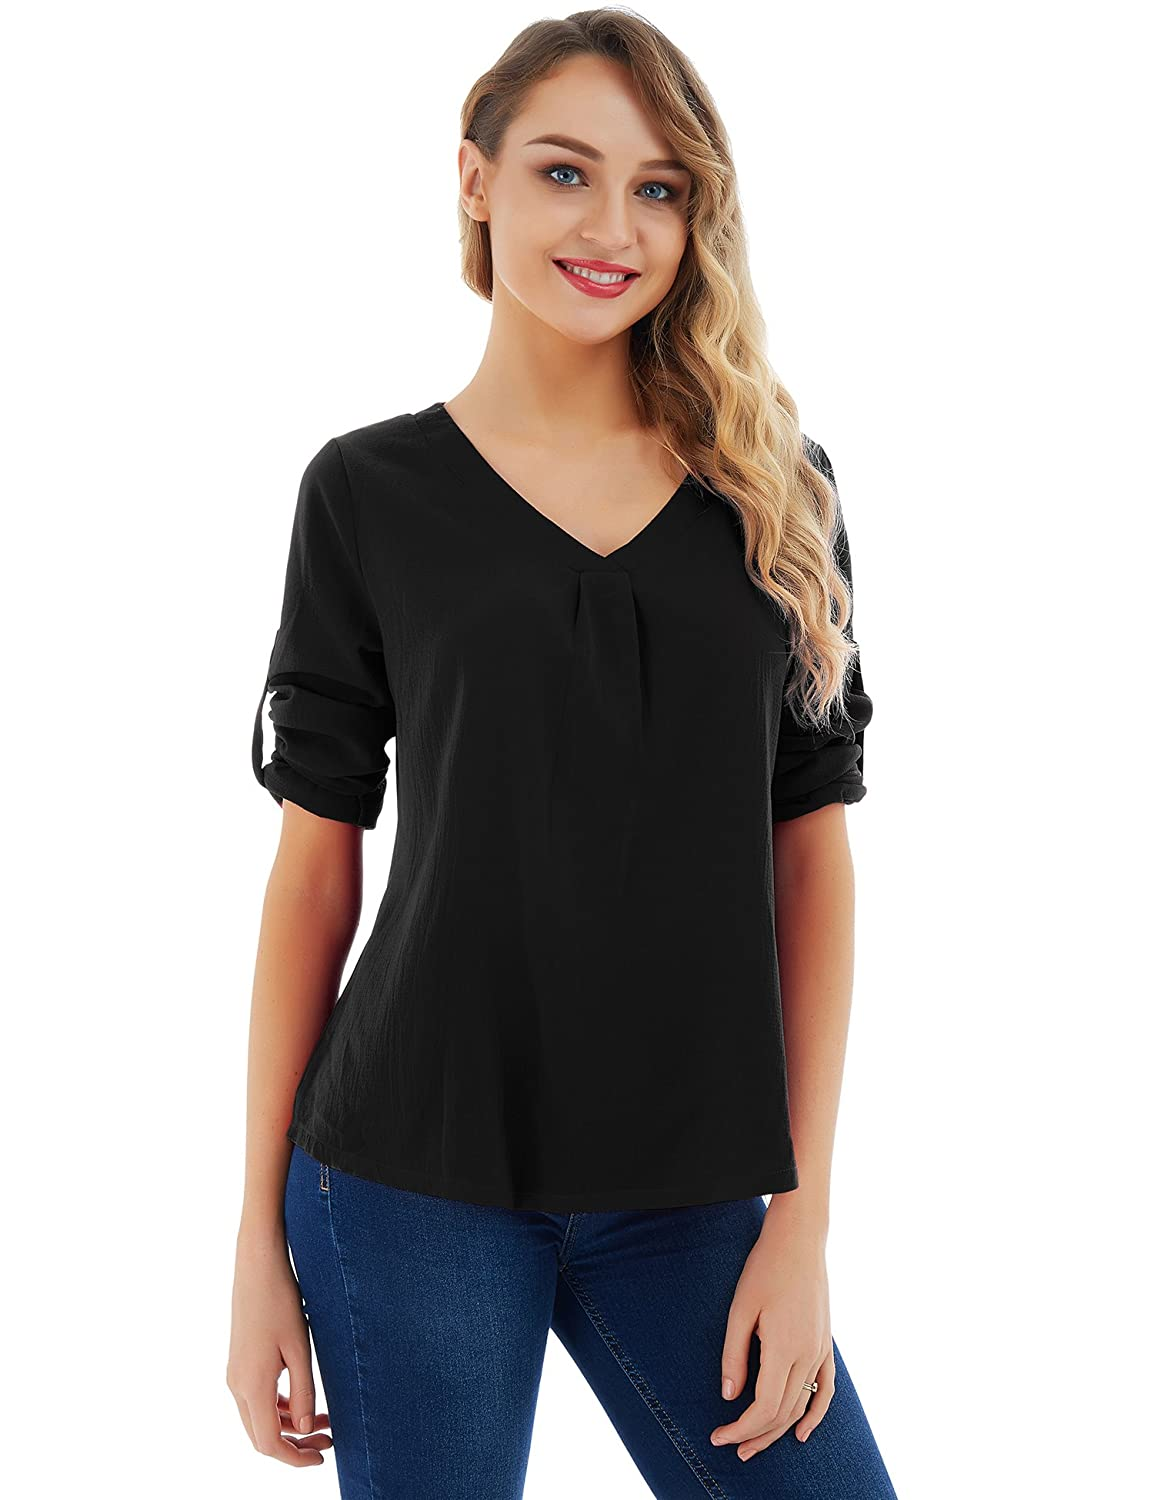 665c0bc50aa The material is soft and lightweight, very comfortable to fit in. Stylish  Design: Loose Sleeve and hem, V Neck, Floral Printed and Solid Color Blouse  Shirt ...